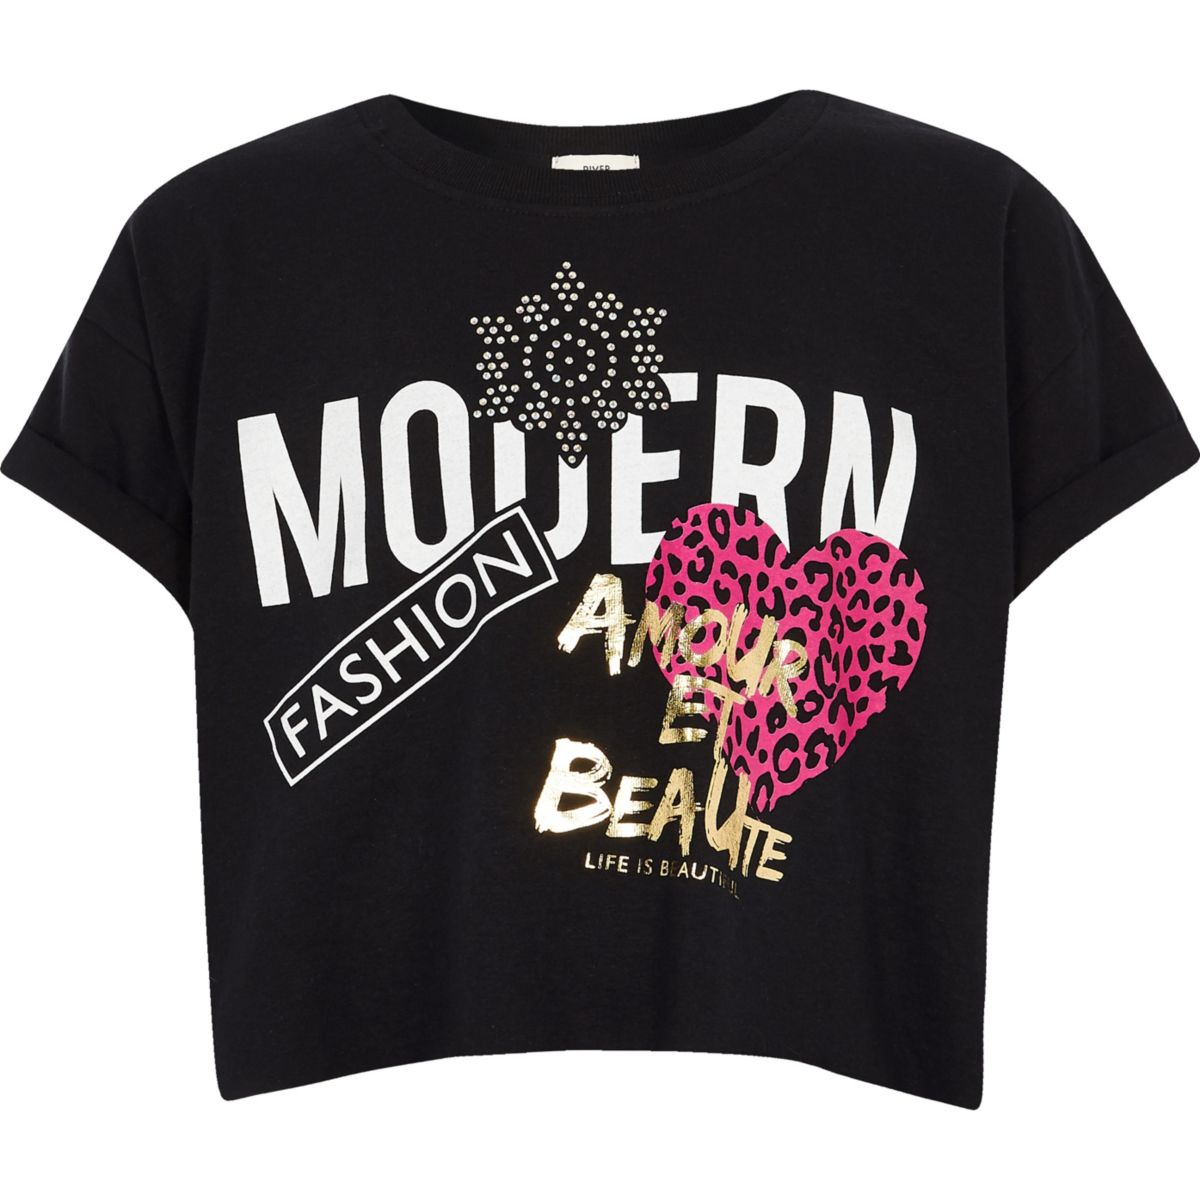 Girls black 'Modern' crop top